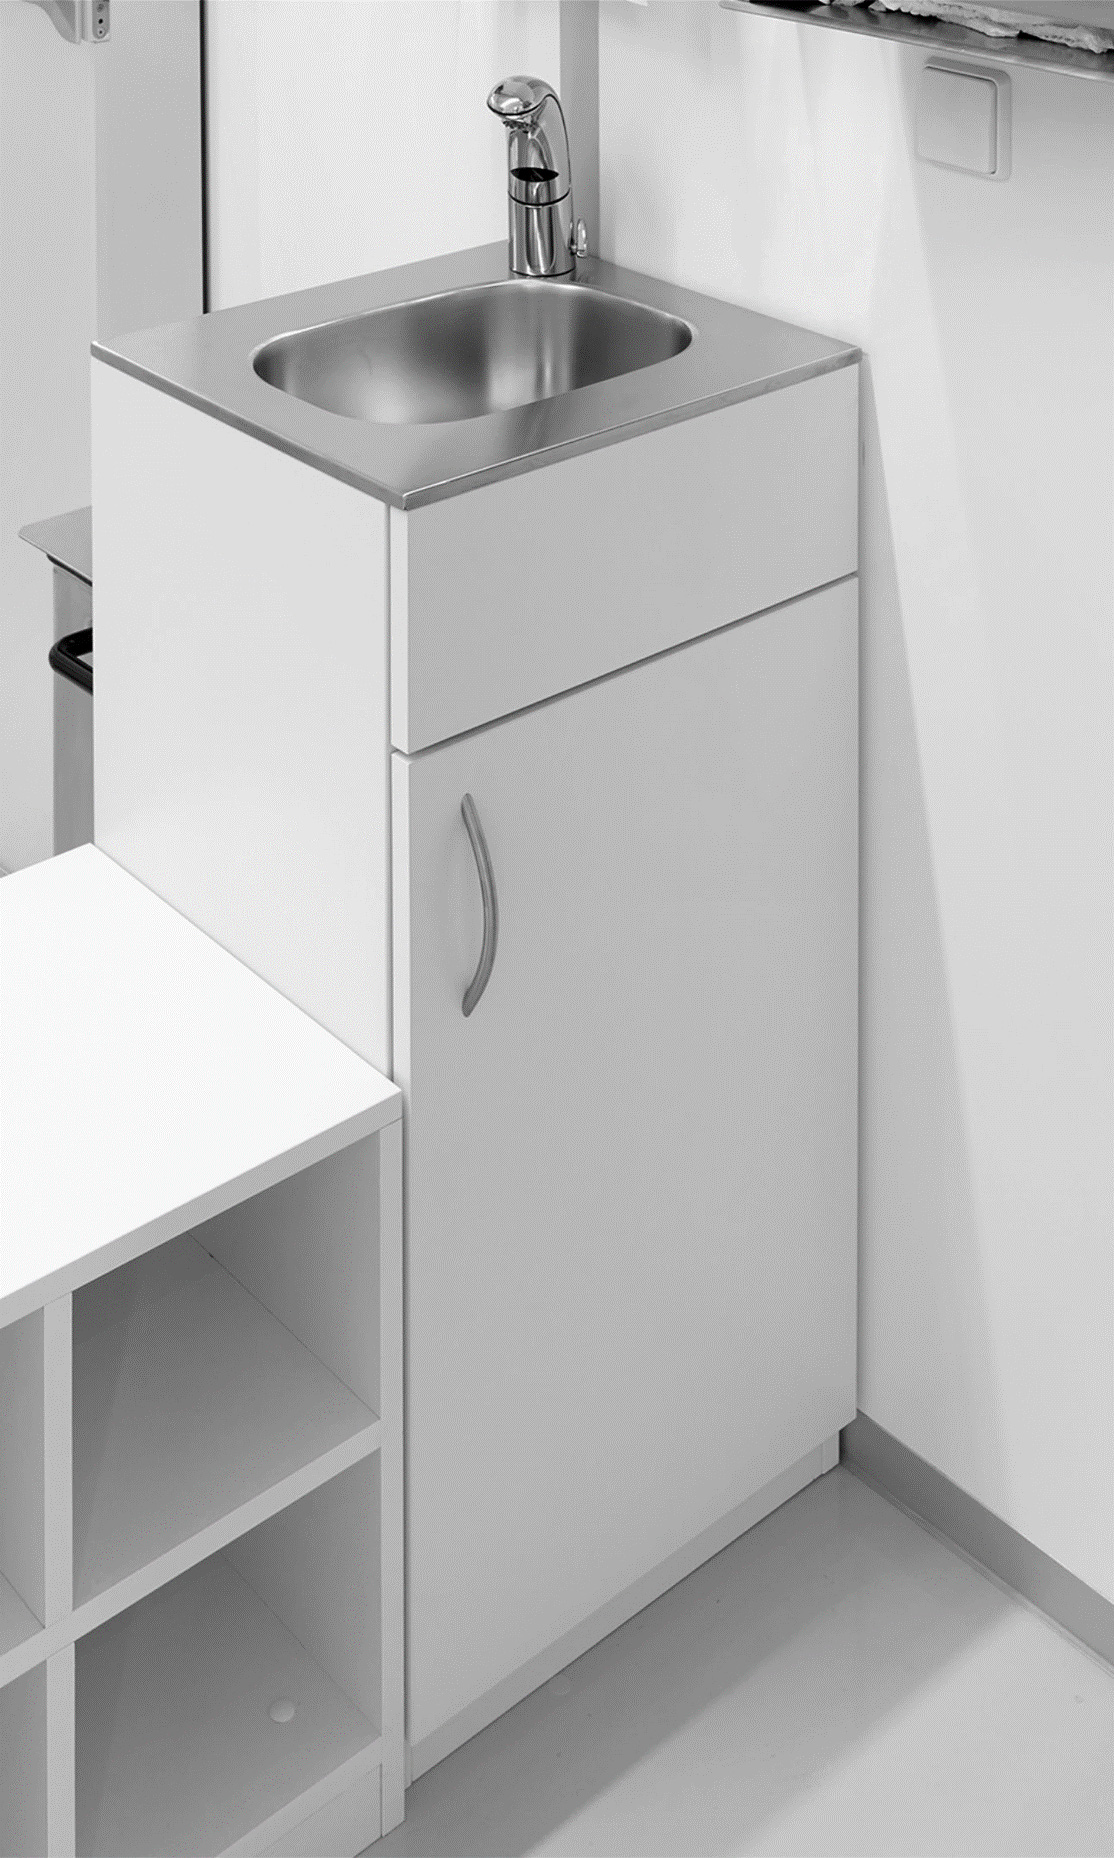 Cleanroom washbasin made of stainless steel, body made of melamine